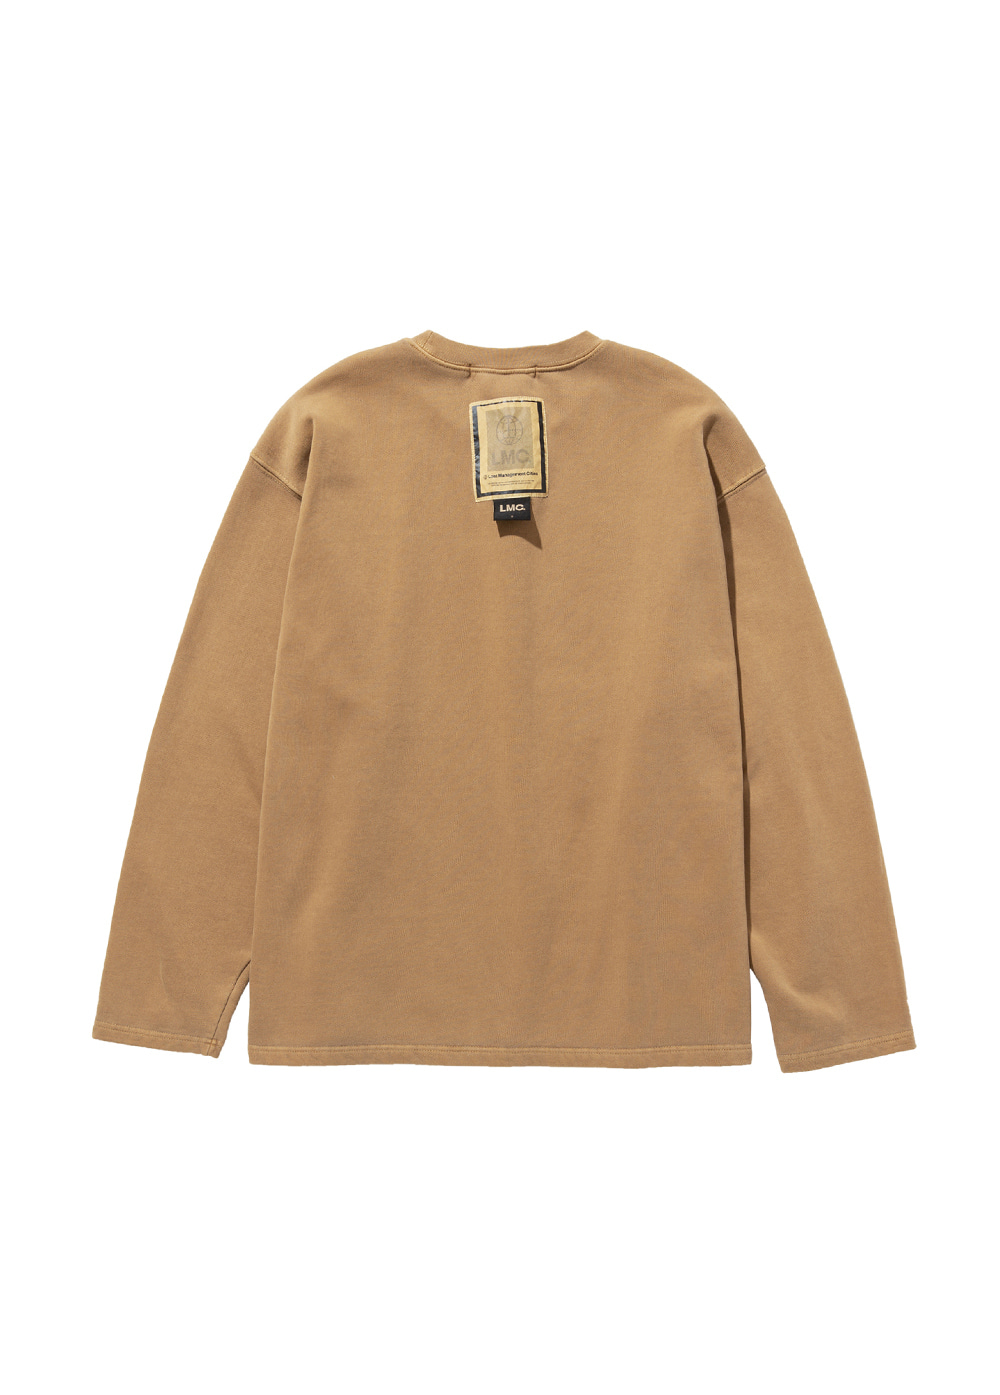 LMC LABEL OVERSIZED SWEATSHIRT dk brown